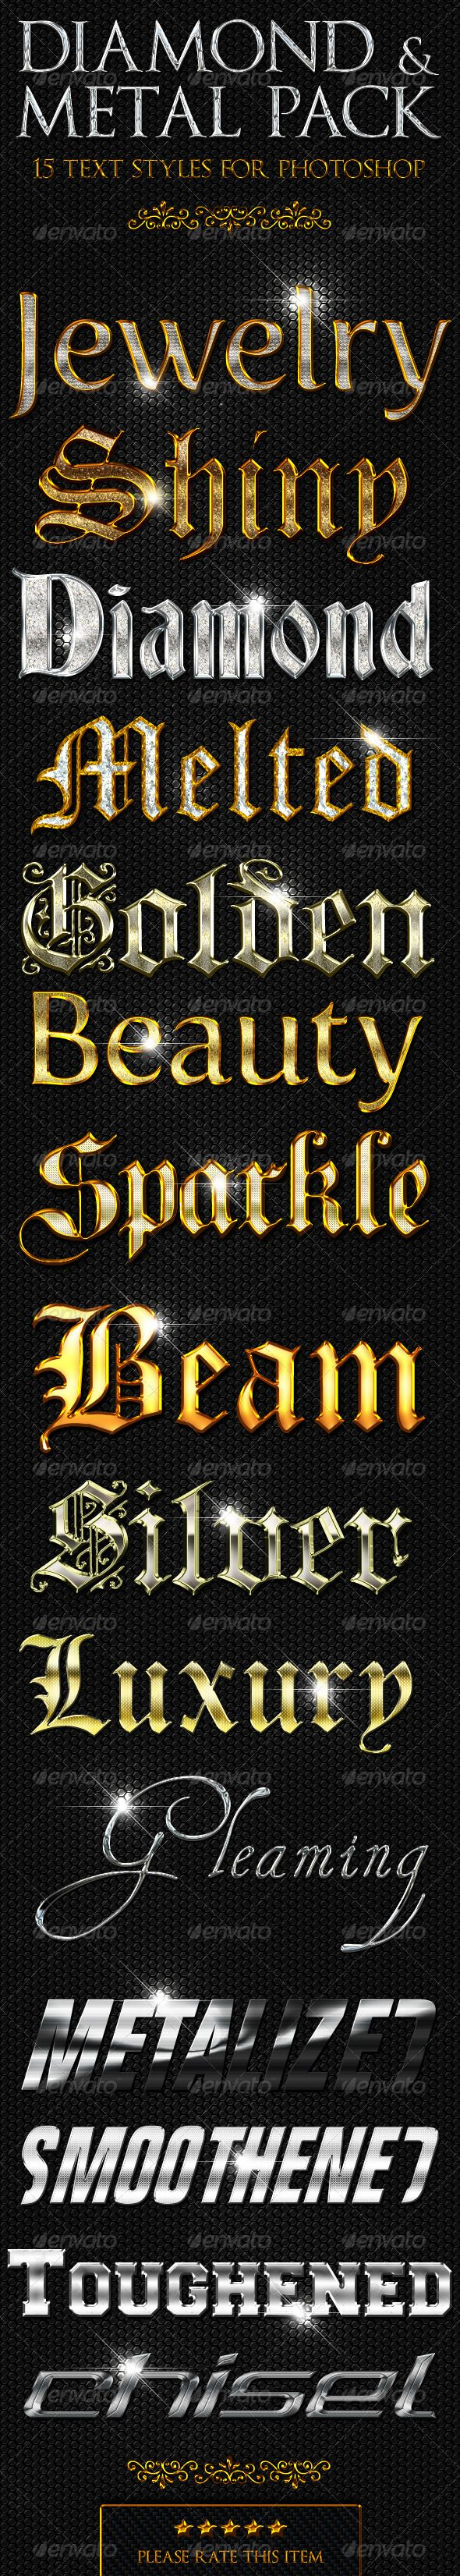 """""""15 Diamond & Metal Text Styles for Photoshop,"""" by """"valecf1"""" sold exclusively at Envato."""